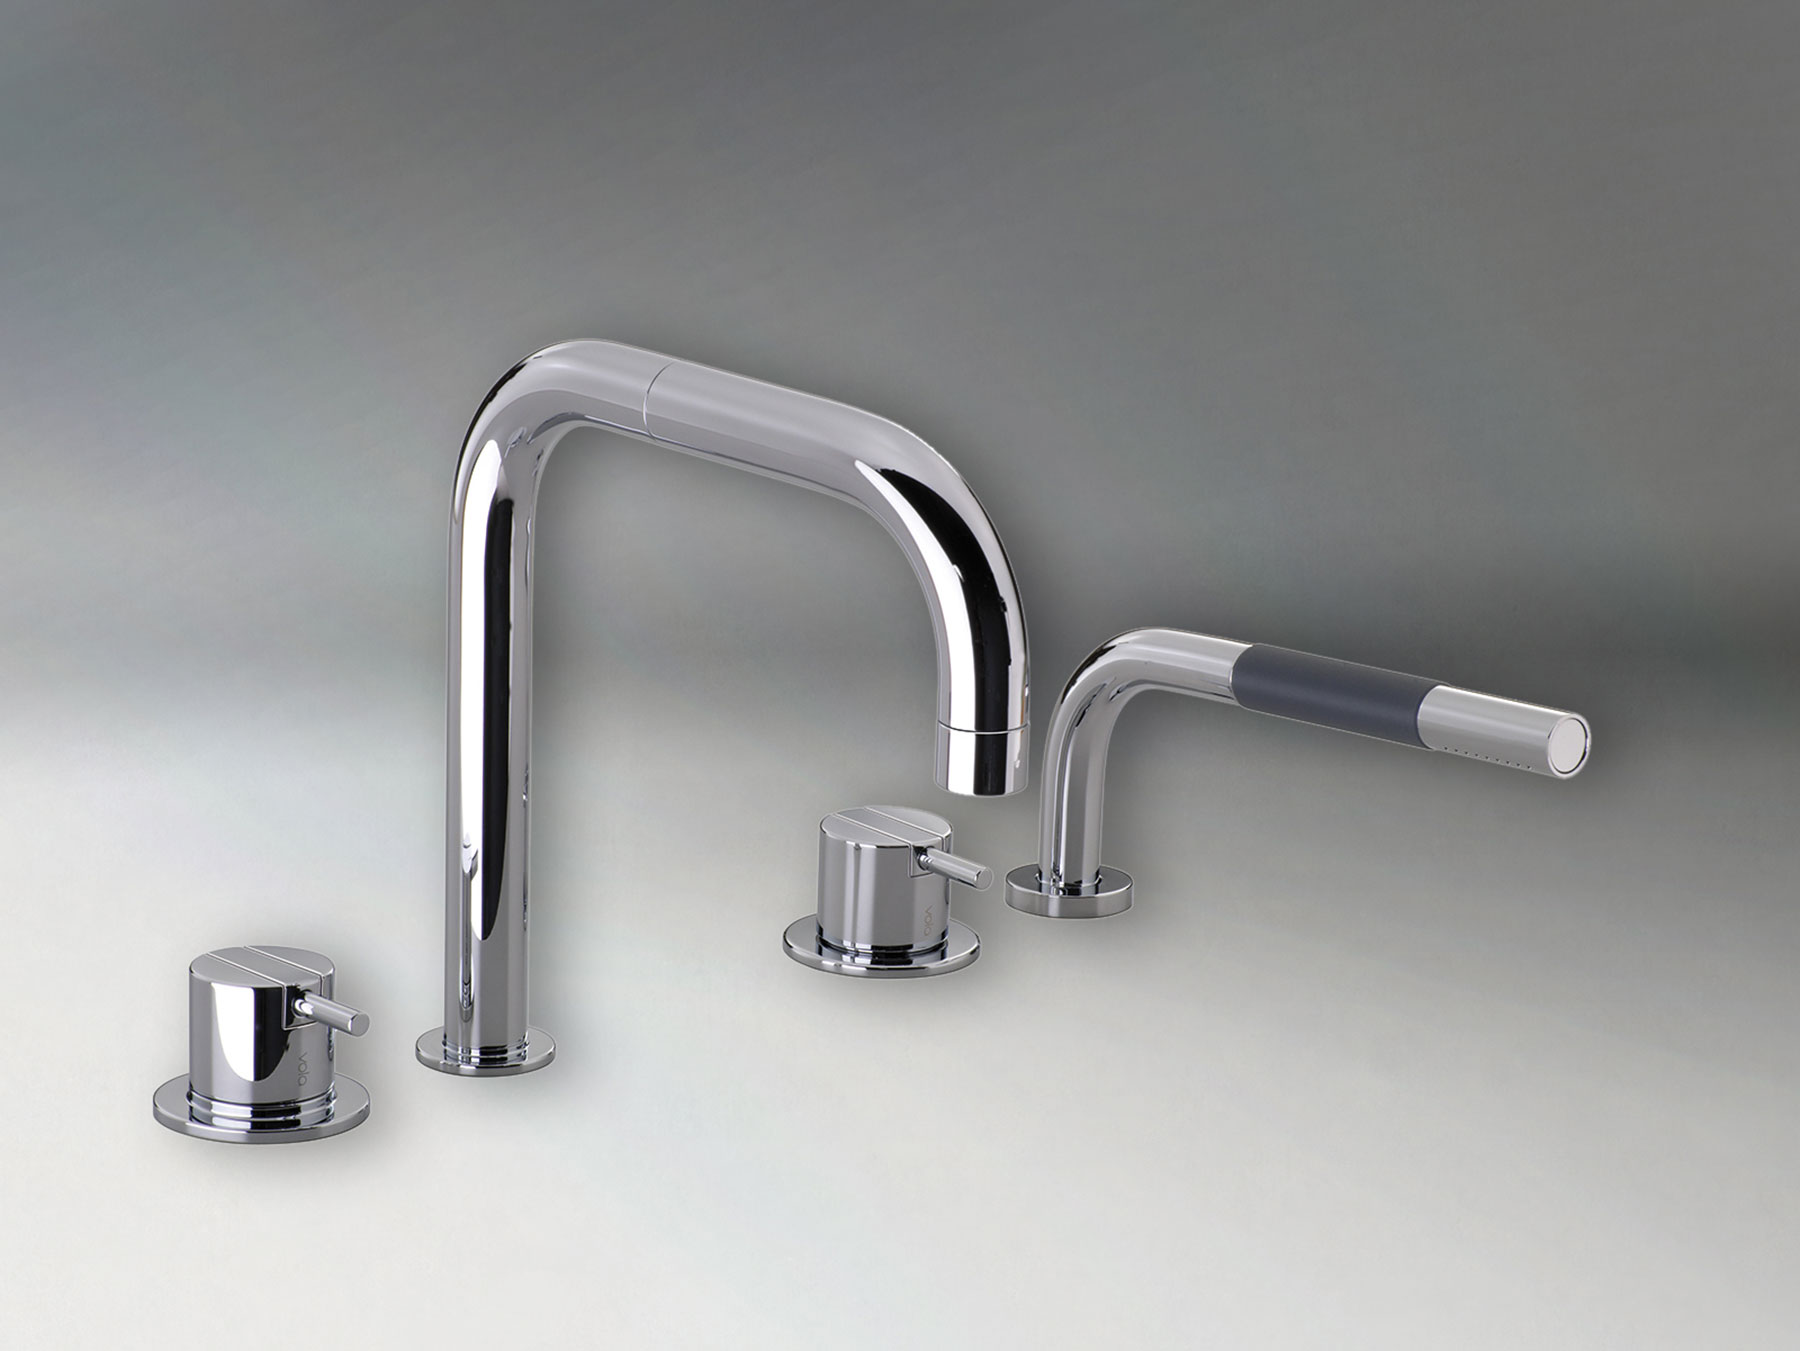 Transitional Vola Deck Mount Tub Faucet